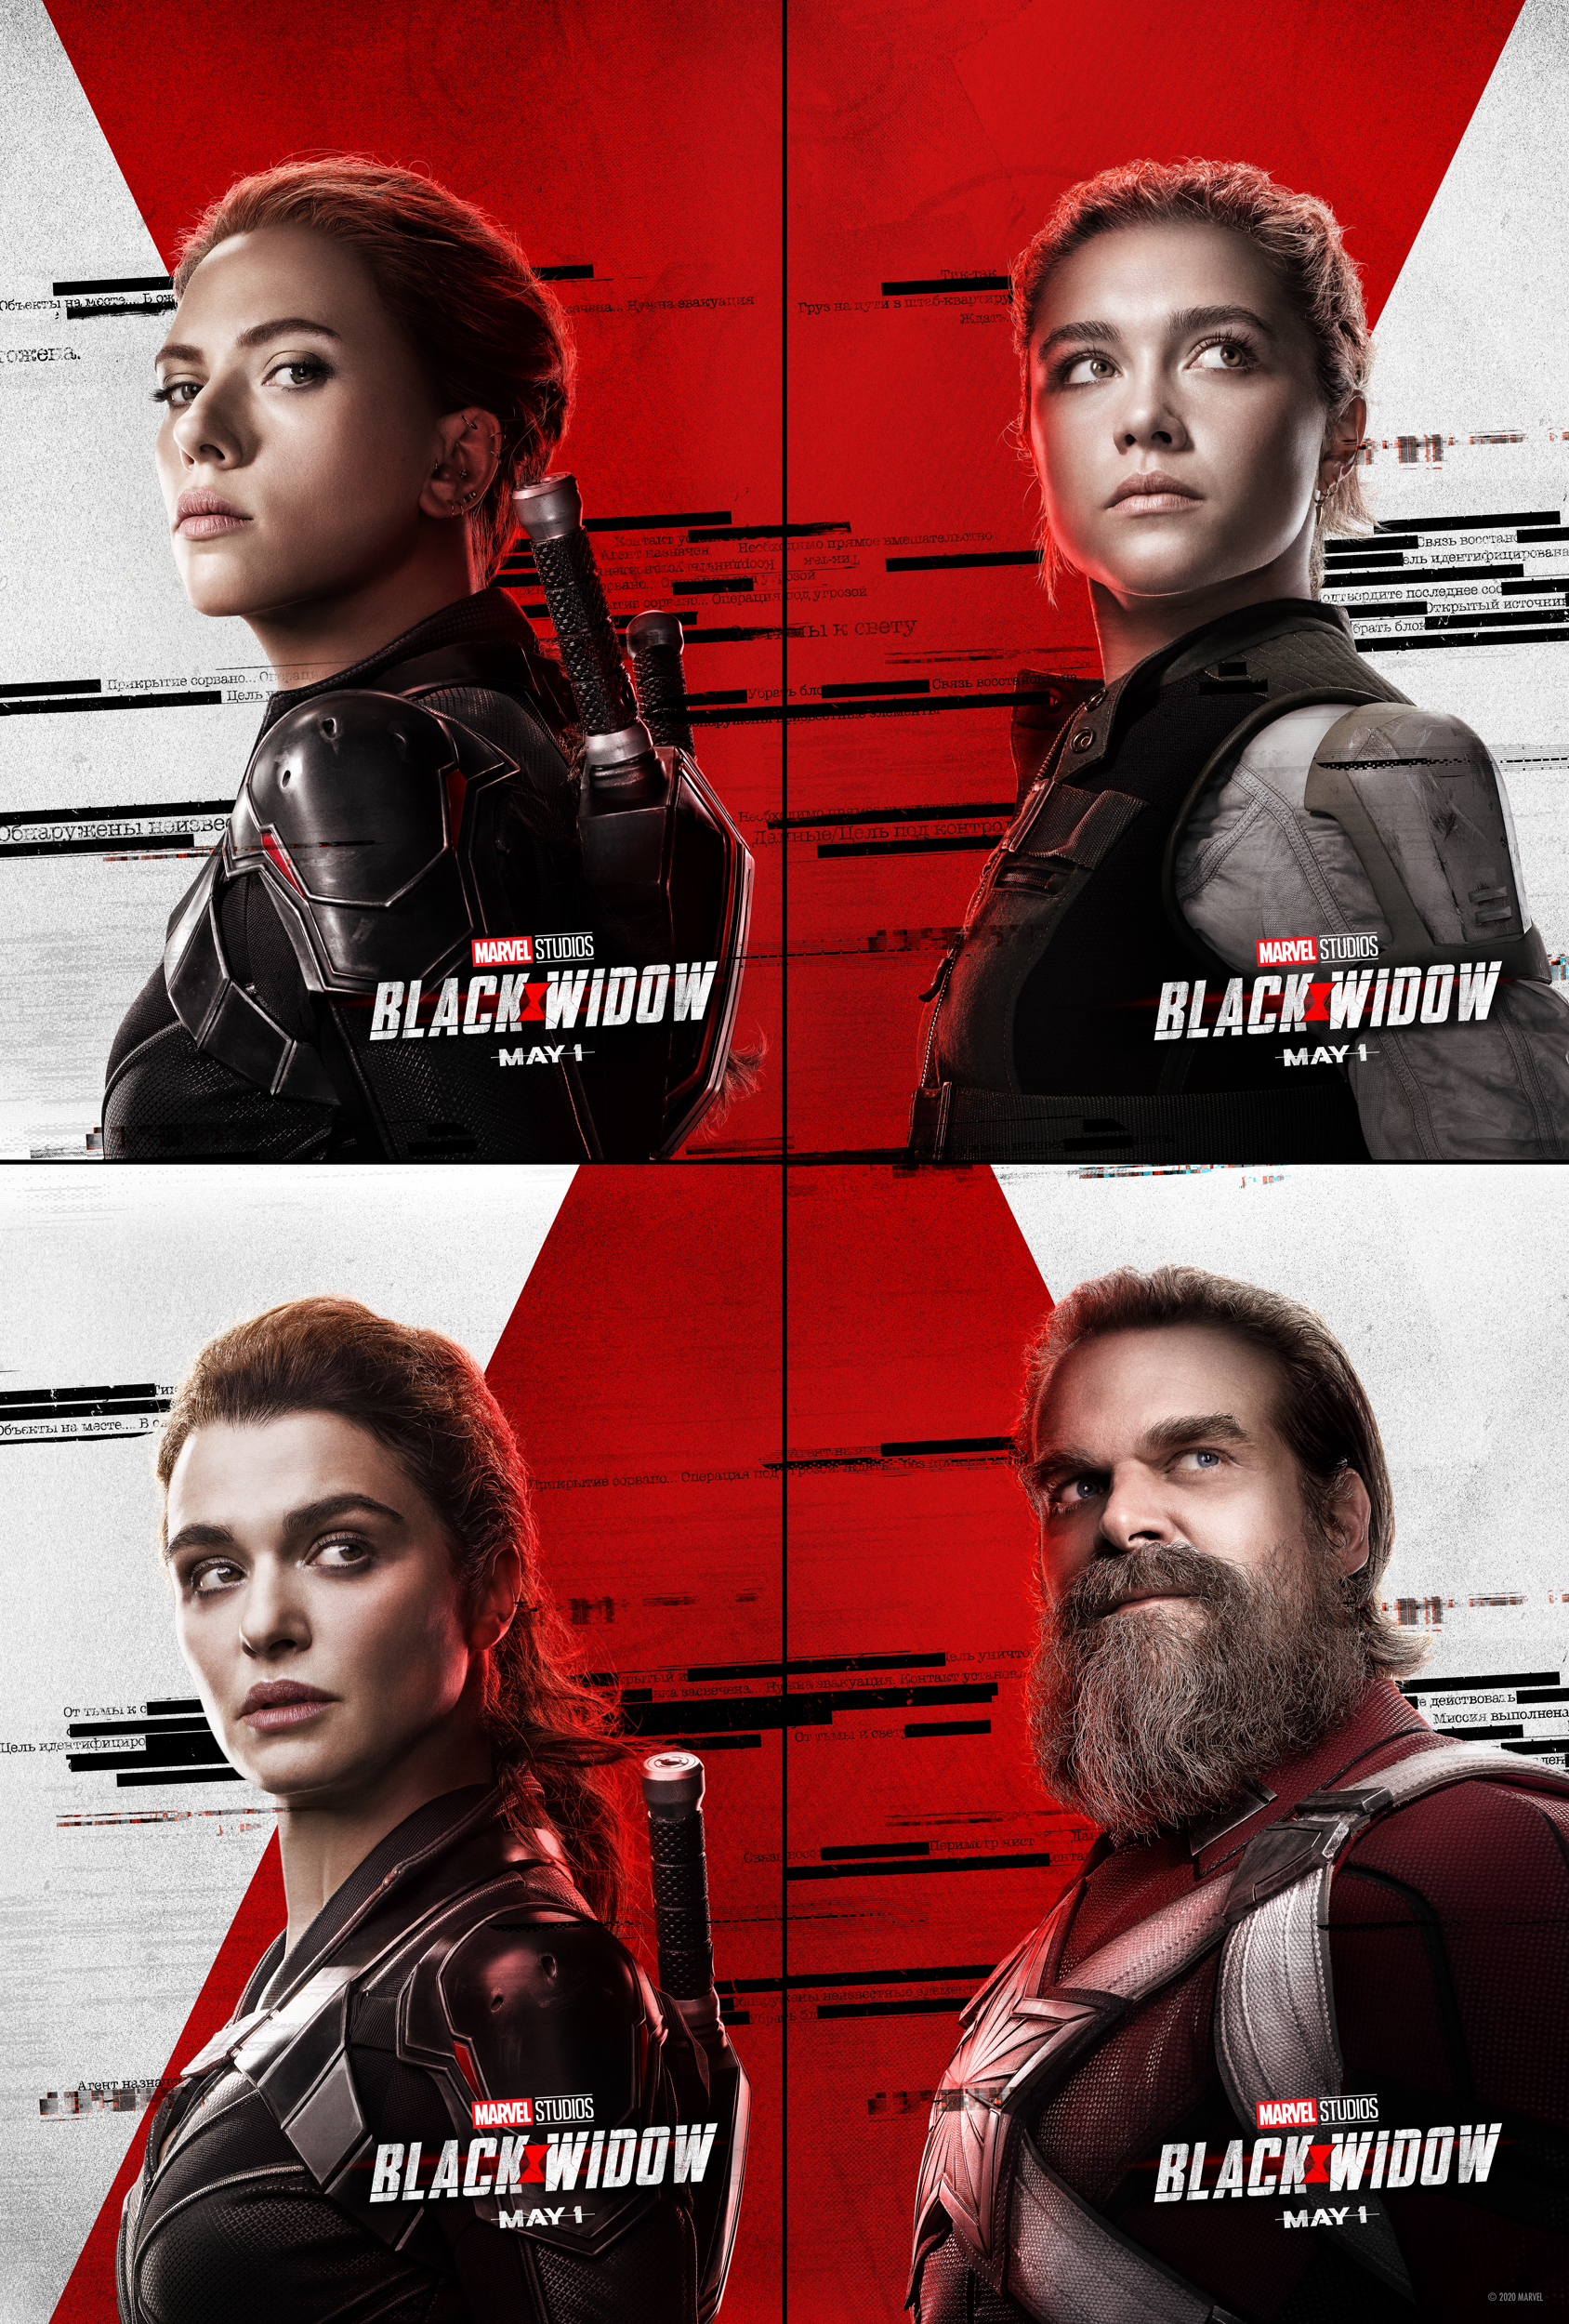 All Characters - Black Widow Poster